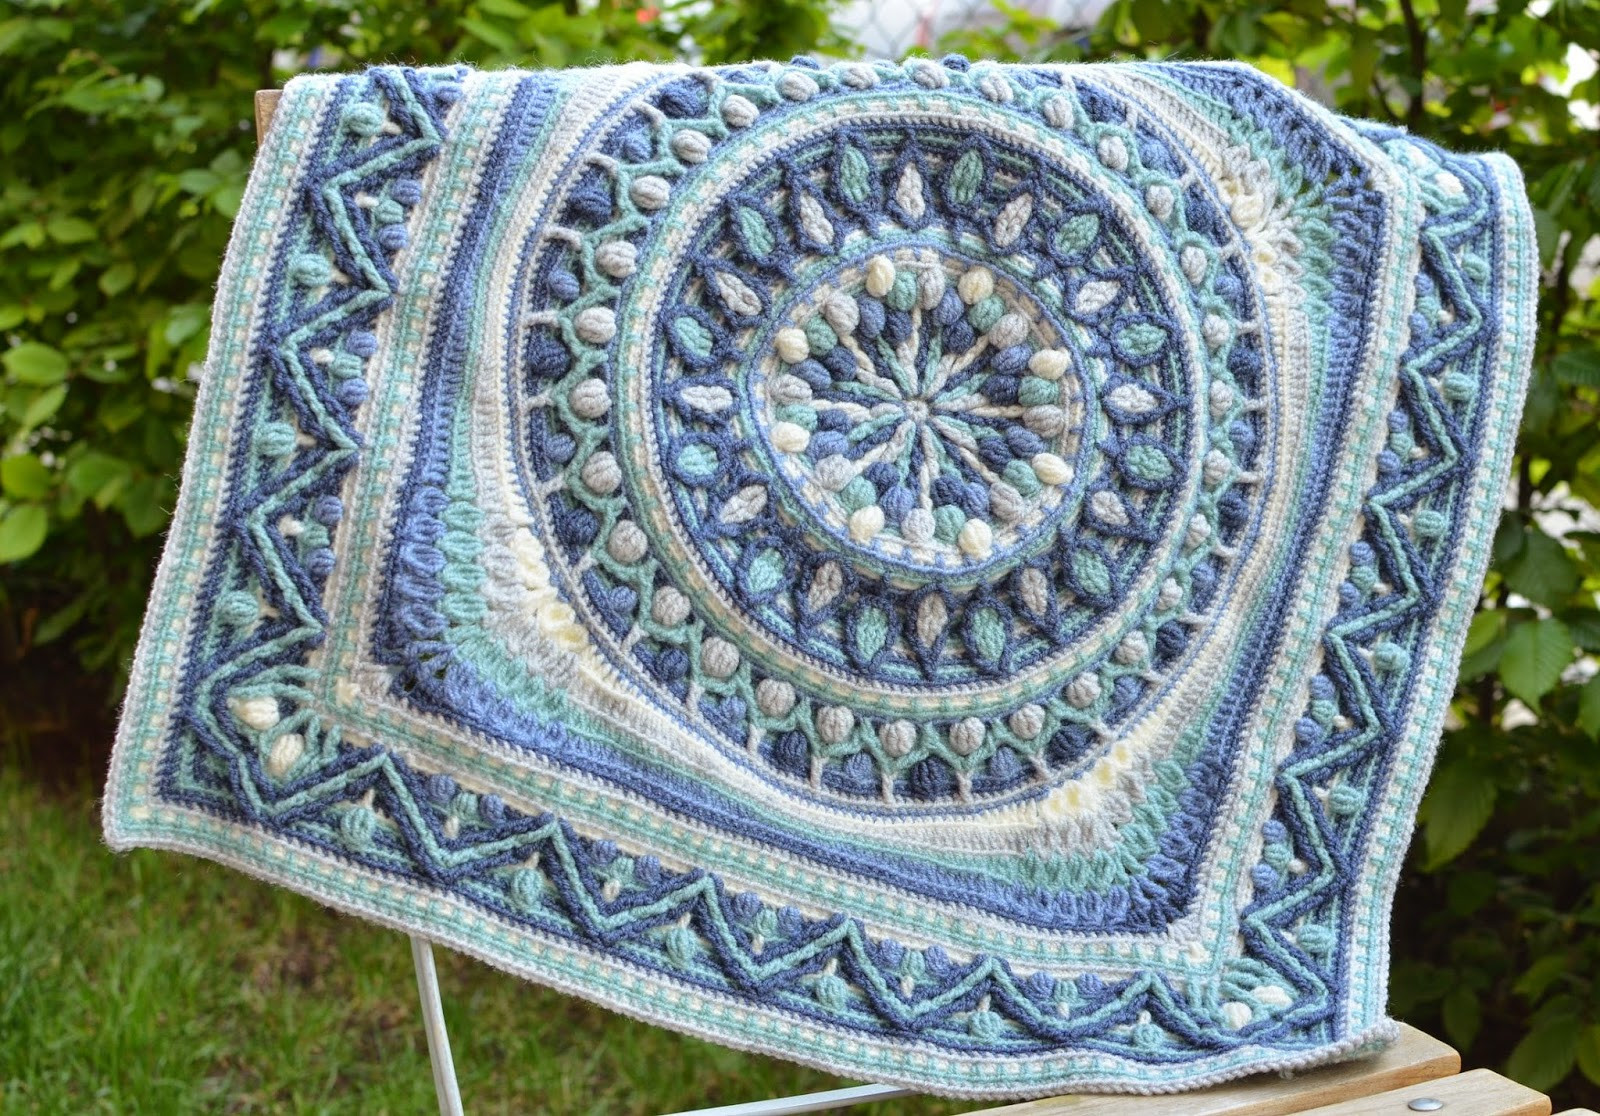 Crochet Squares or Second Life of Dandelion Mandala